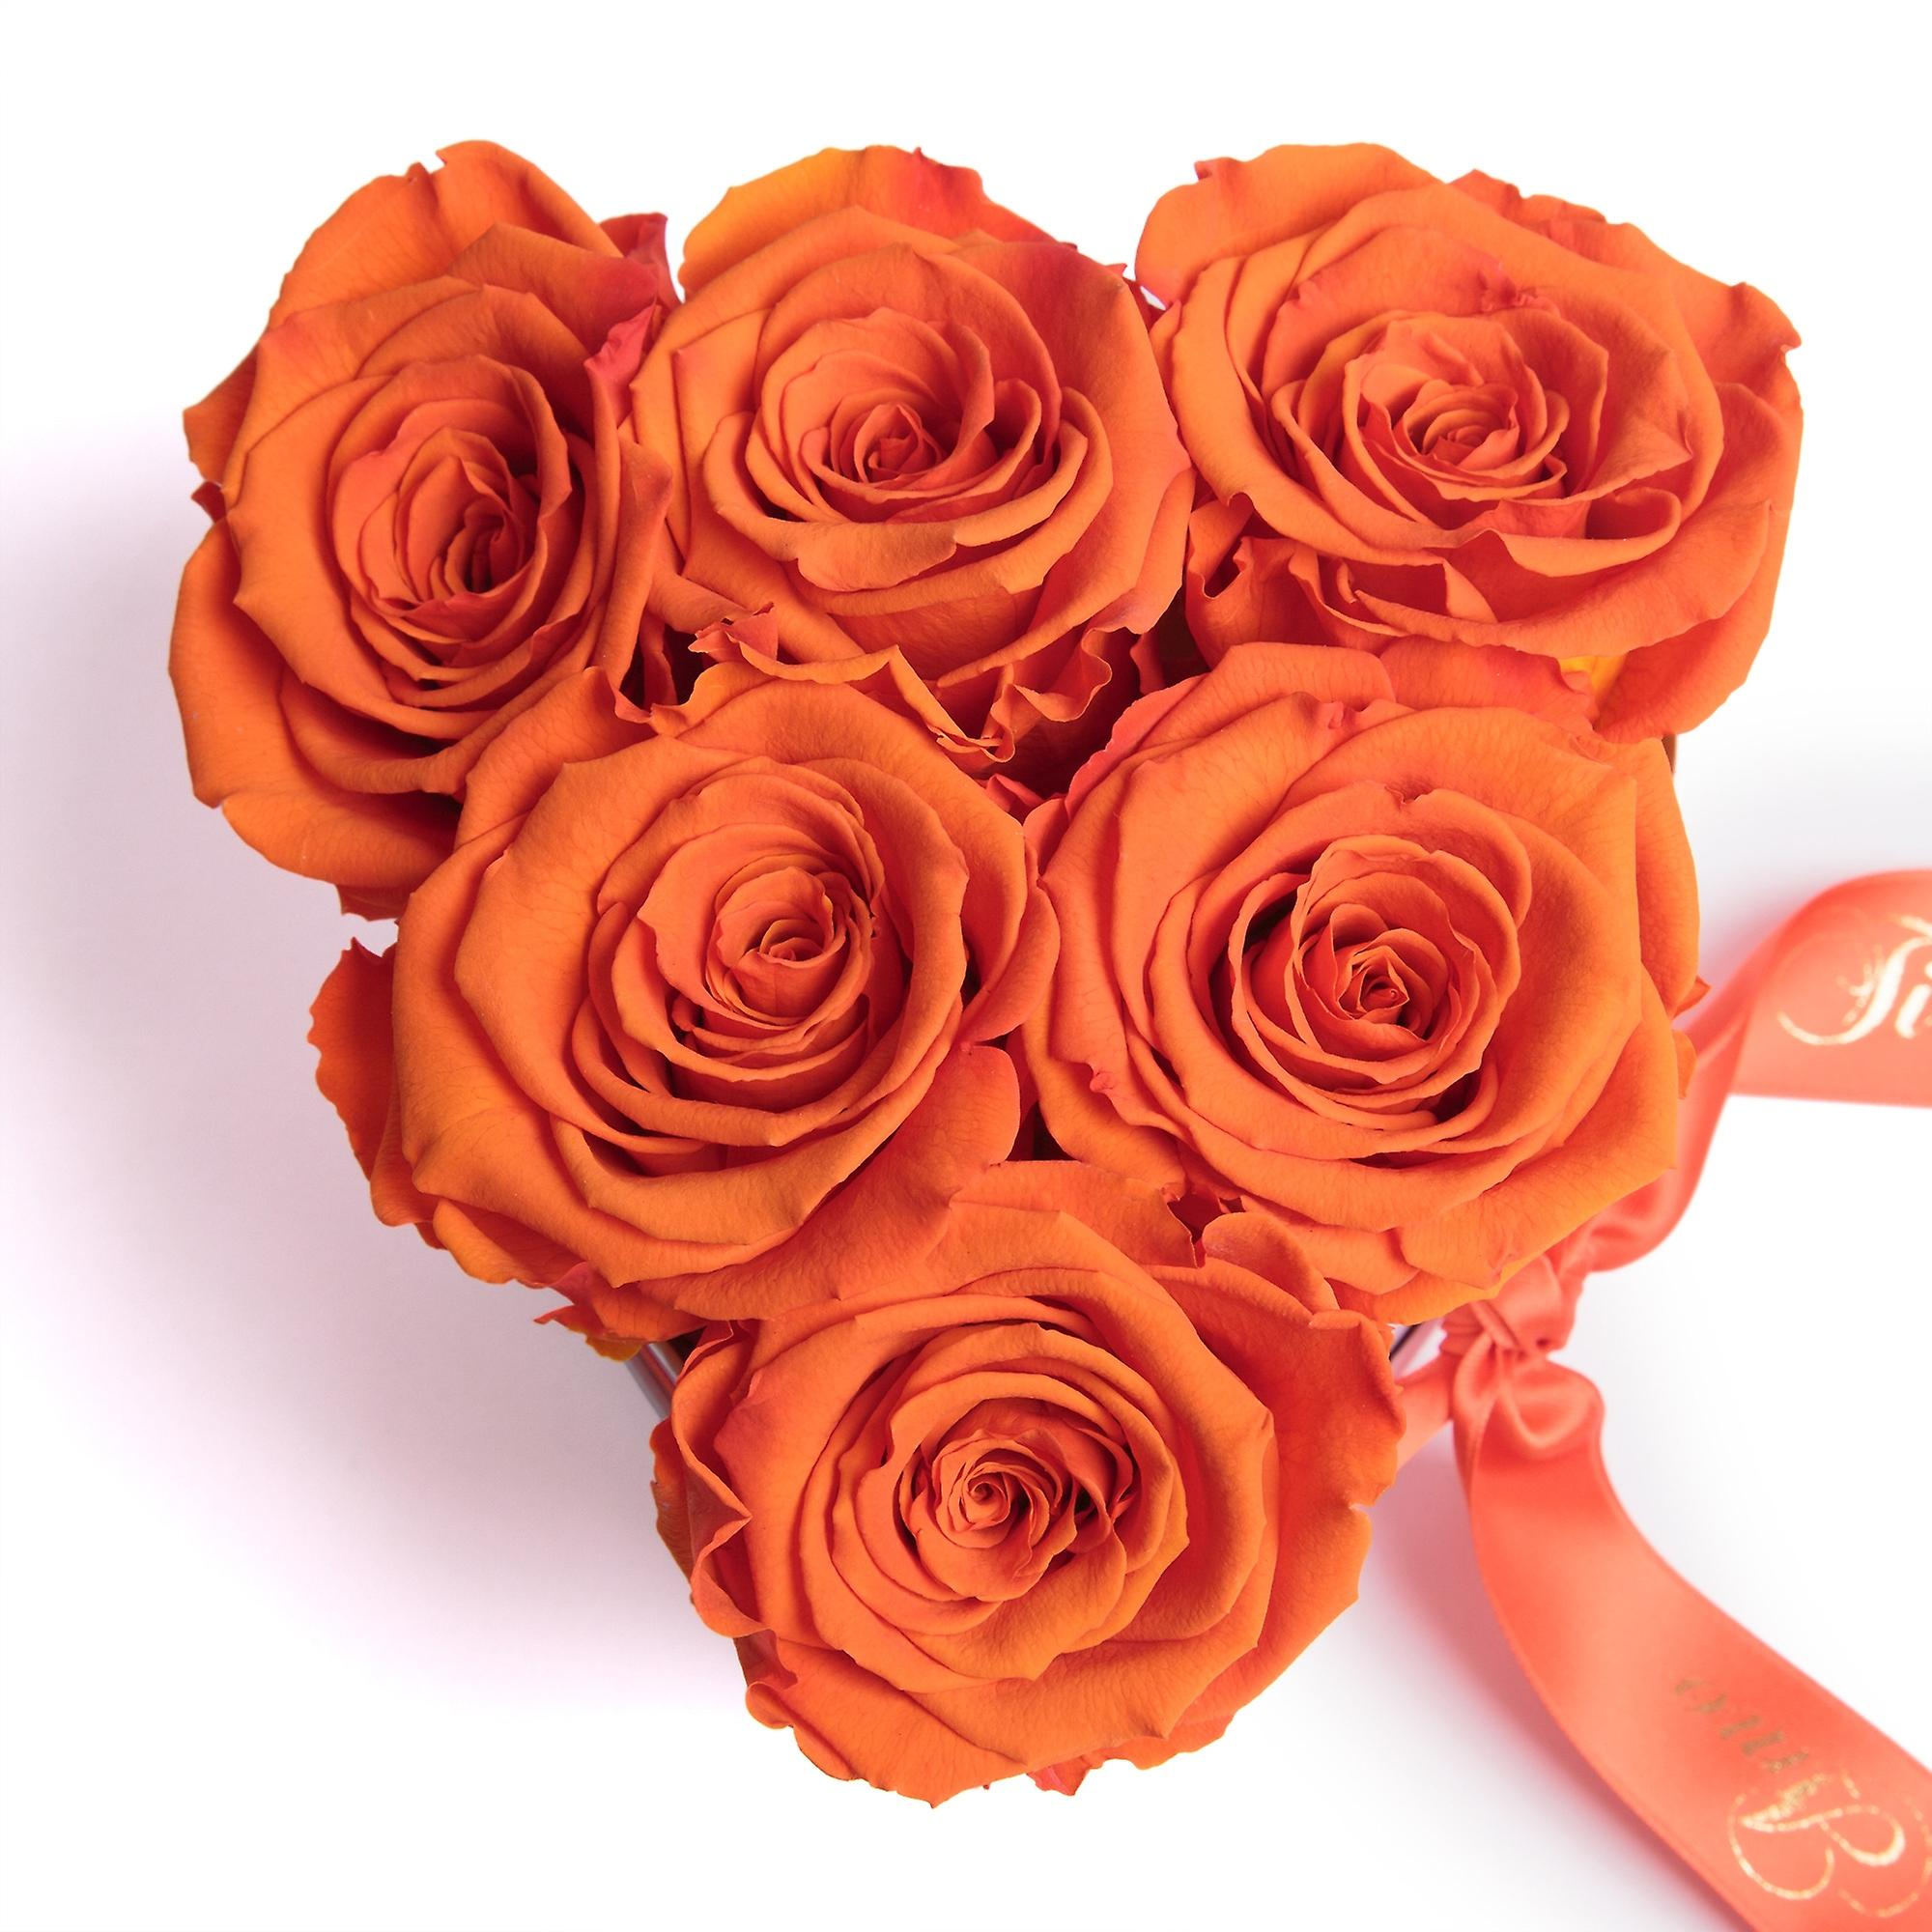 Ti Amo Flowers Roses Box in Heart Shape 6 Preserved Eternal Roses in Orange